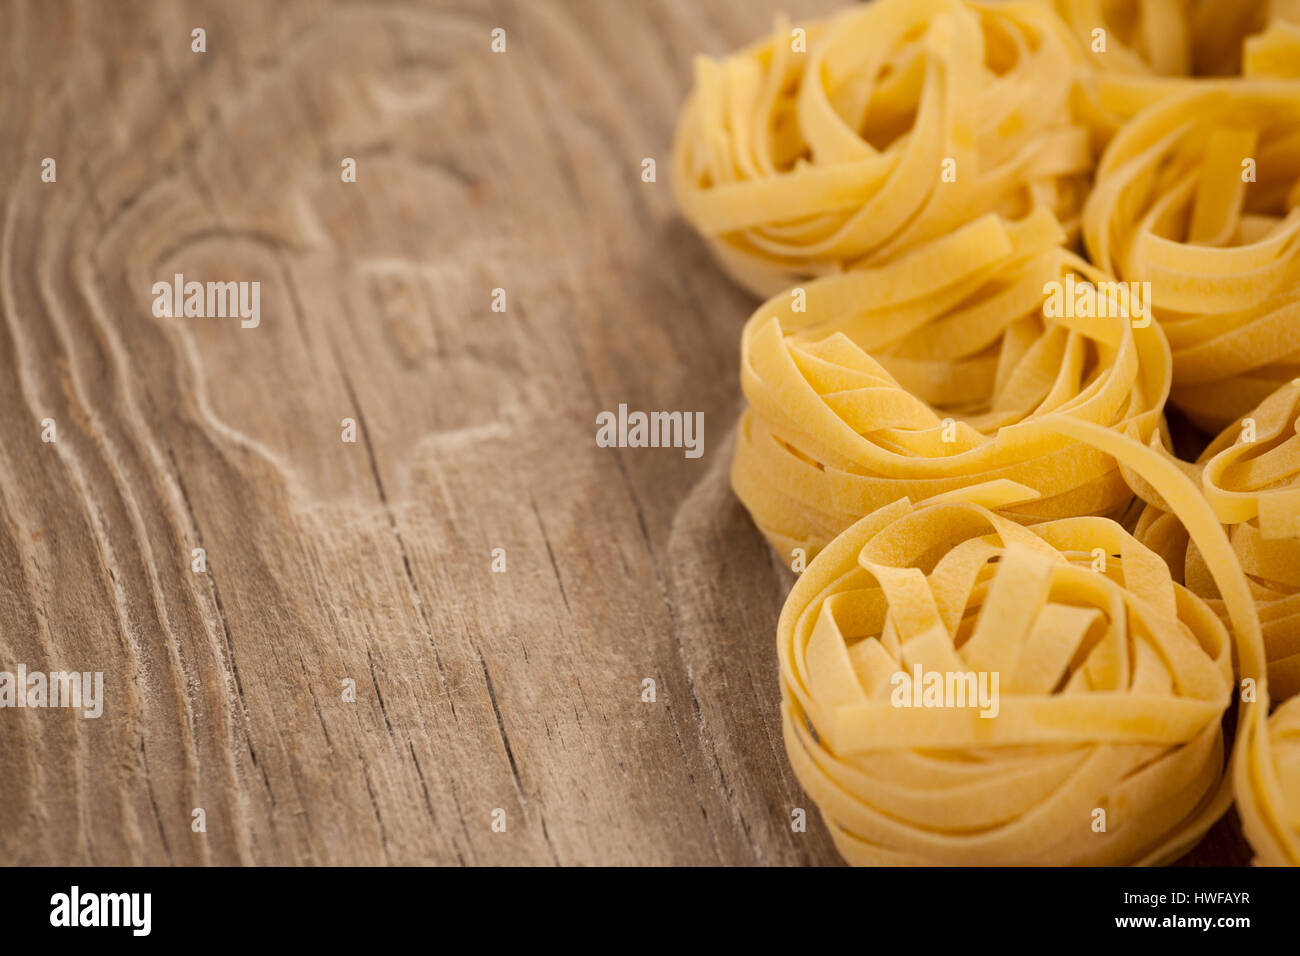 Fettuccine pasta arranged in a row on wooden background Stock Photo